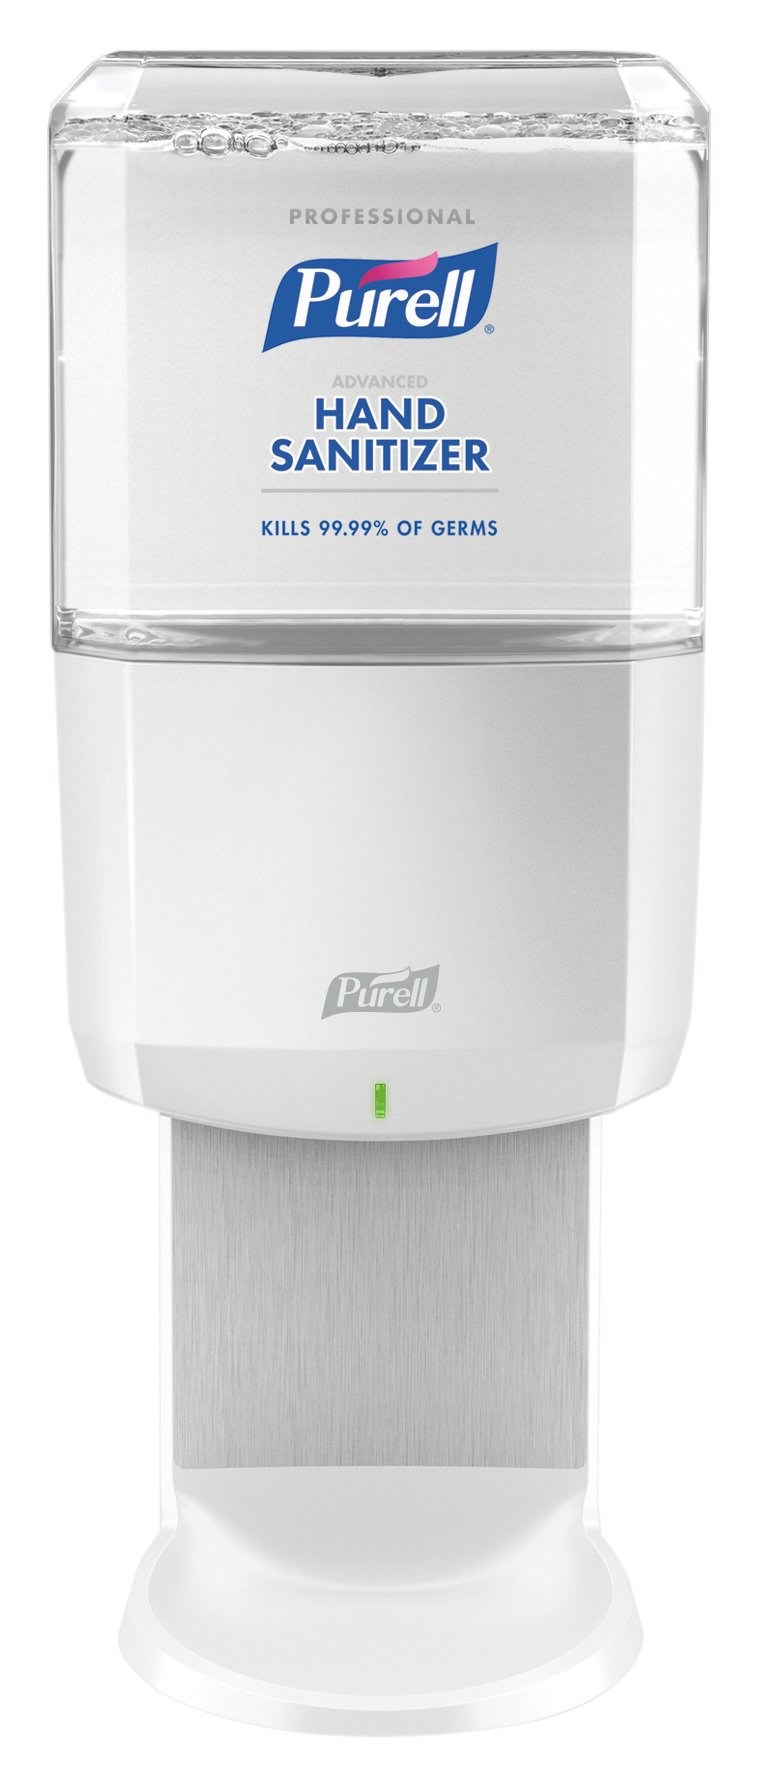 PURELL Professional Advanced Hand Sanitizer Foam ES6 Starter Kit, 1- 1200 mL Sanitizer Refill + 1 - ES6 White Touch-Free Dispenser - 6454-1W by Purell